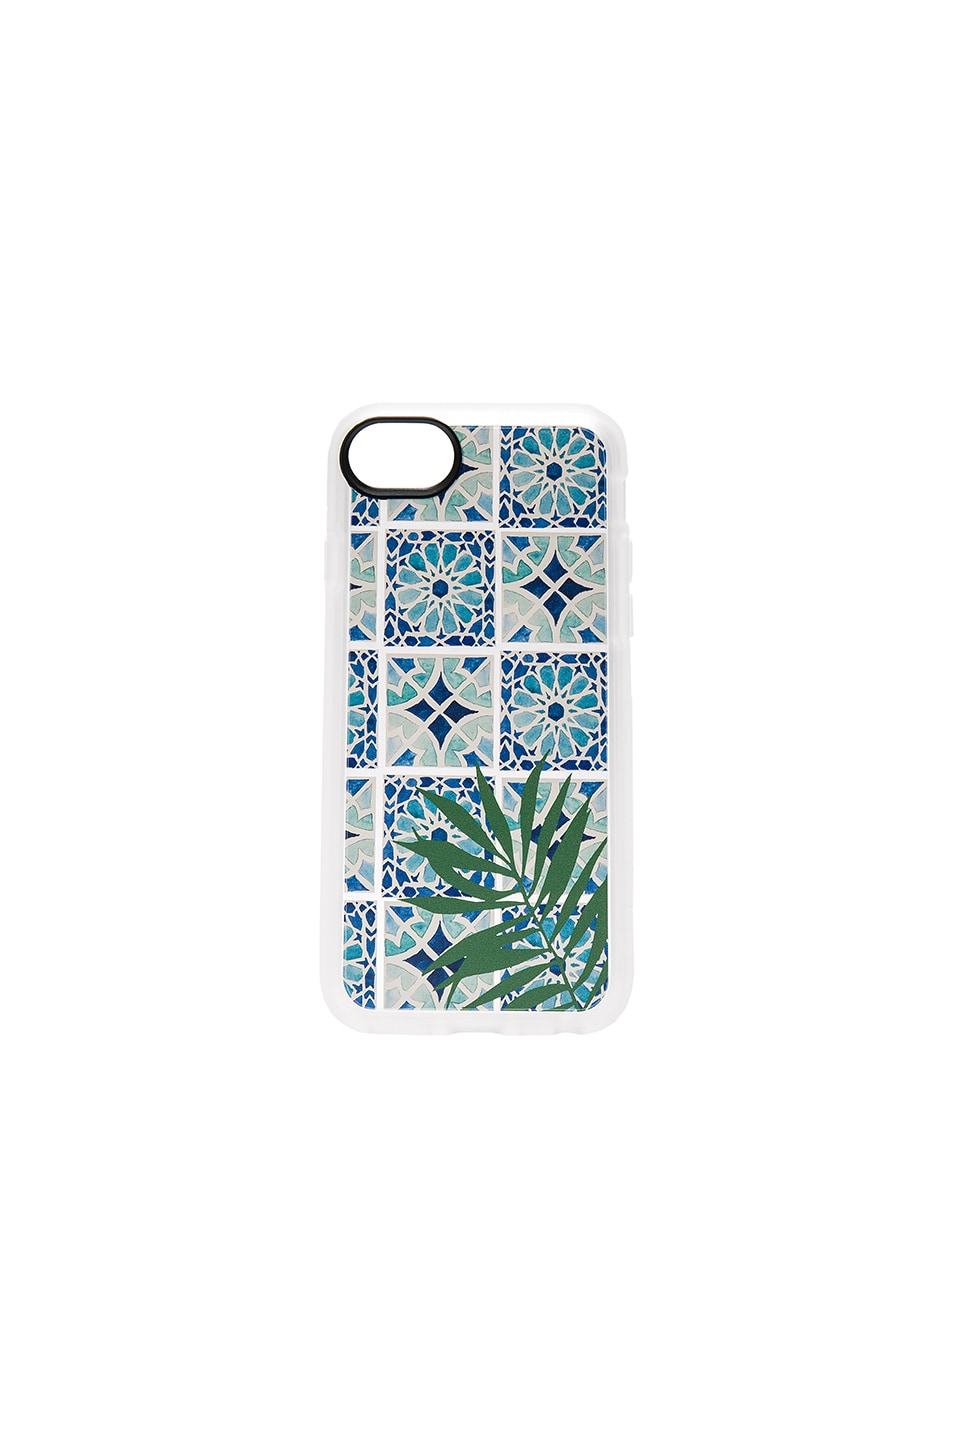 Casetify Tropical Leave Moroccan Tiles iPhone 7 Case in Clear